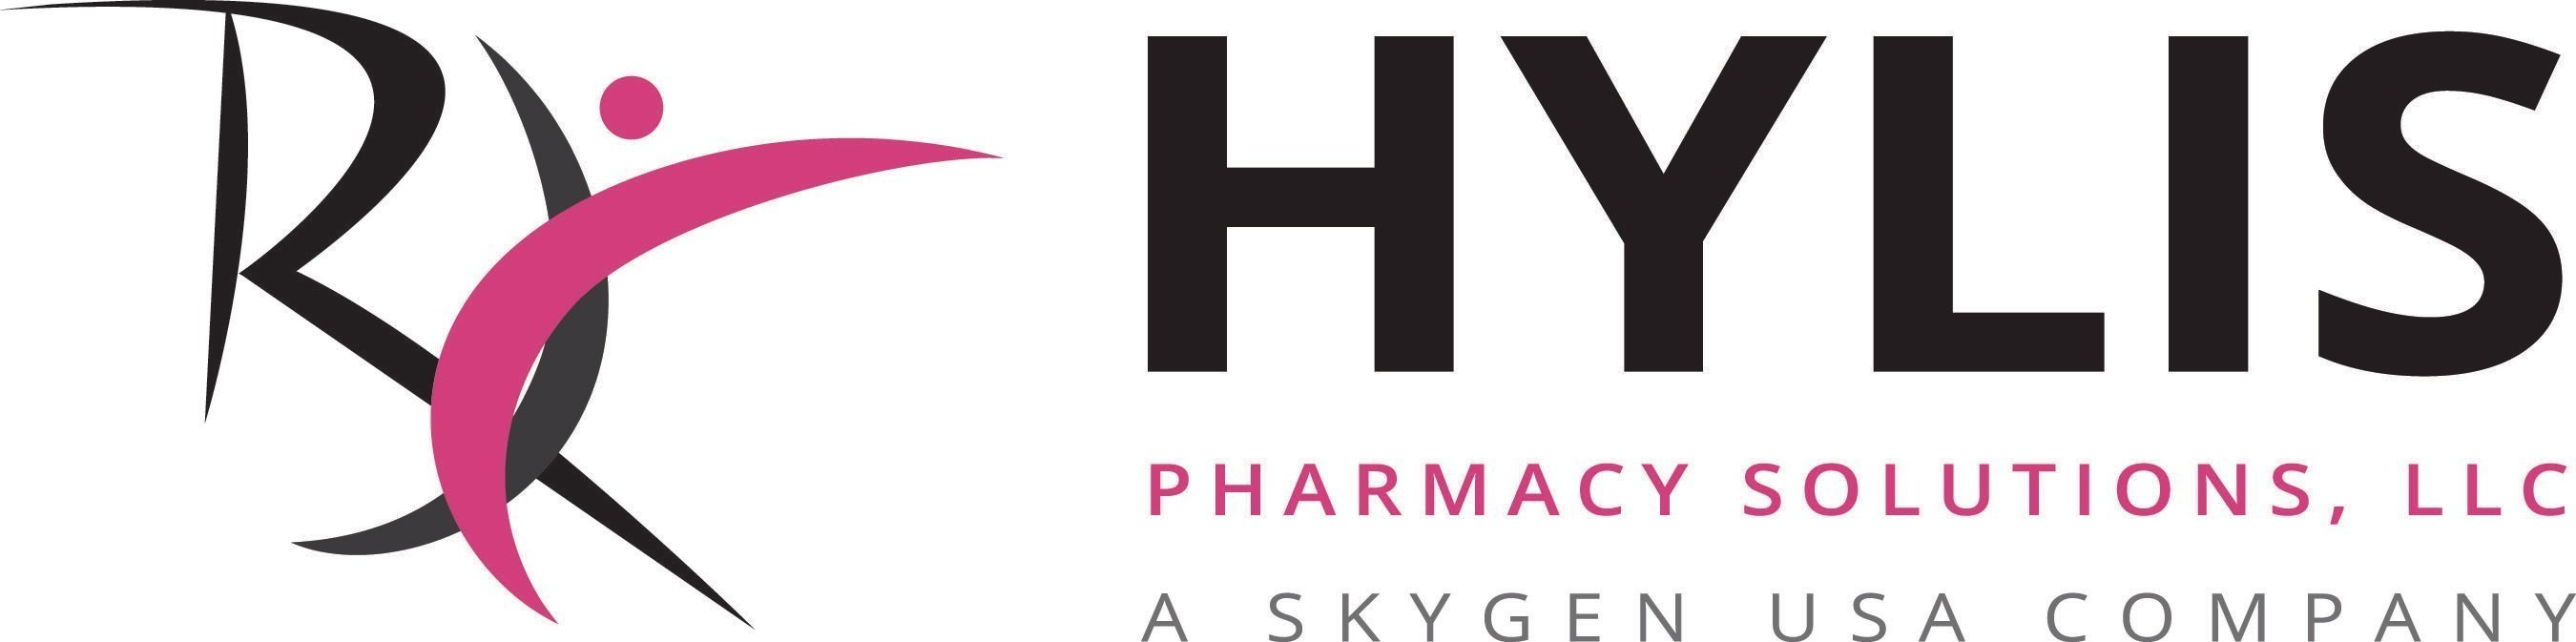 Hylis Pharmacy Solutions (HPS) is a leading-edge data analytics company focused on bringing a new wave of ...